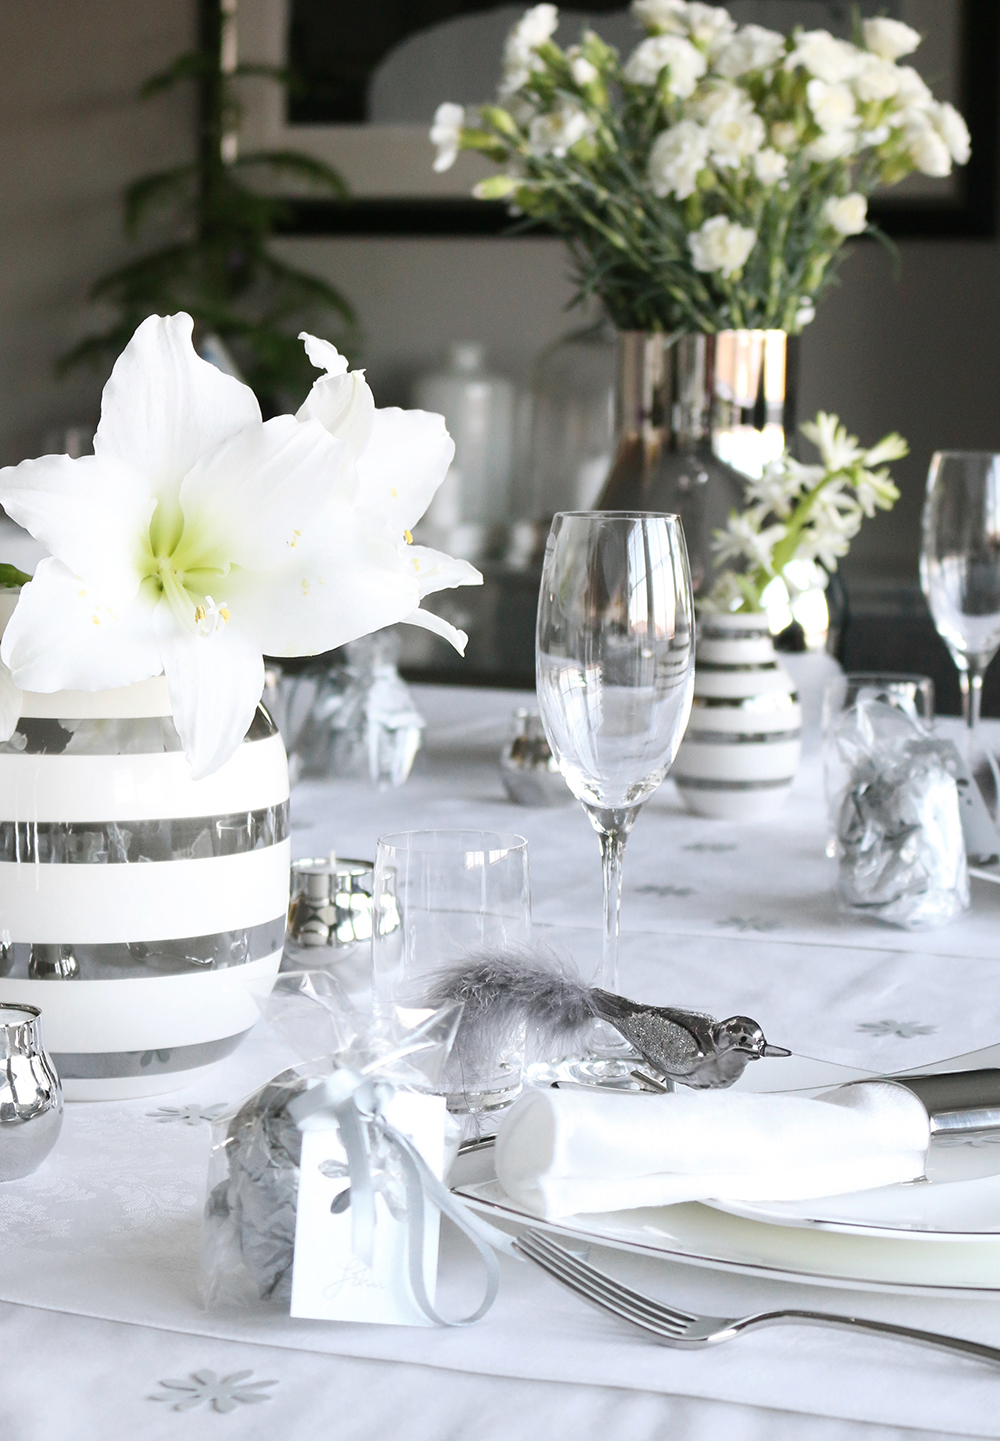 New-Year-tablesetting-2